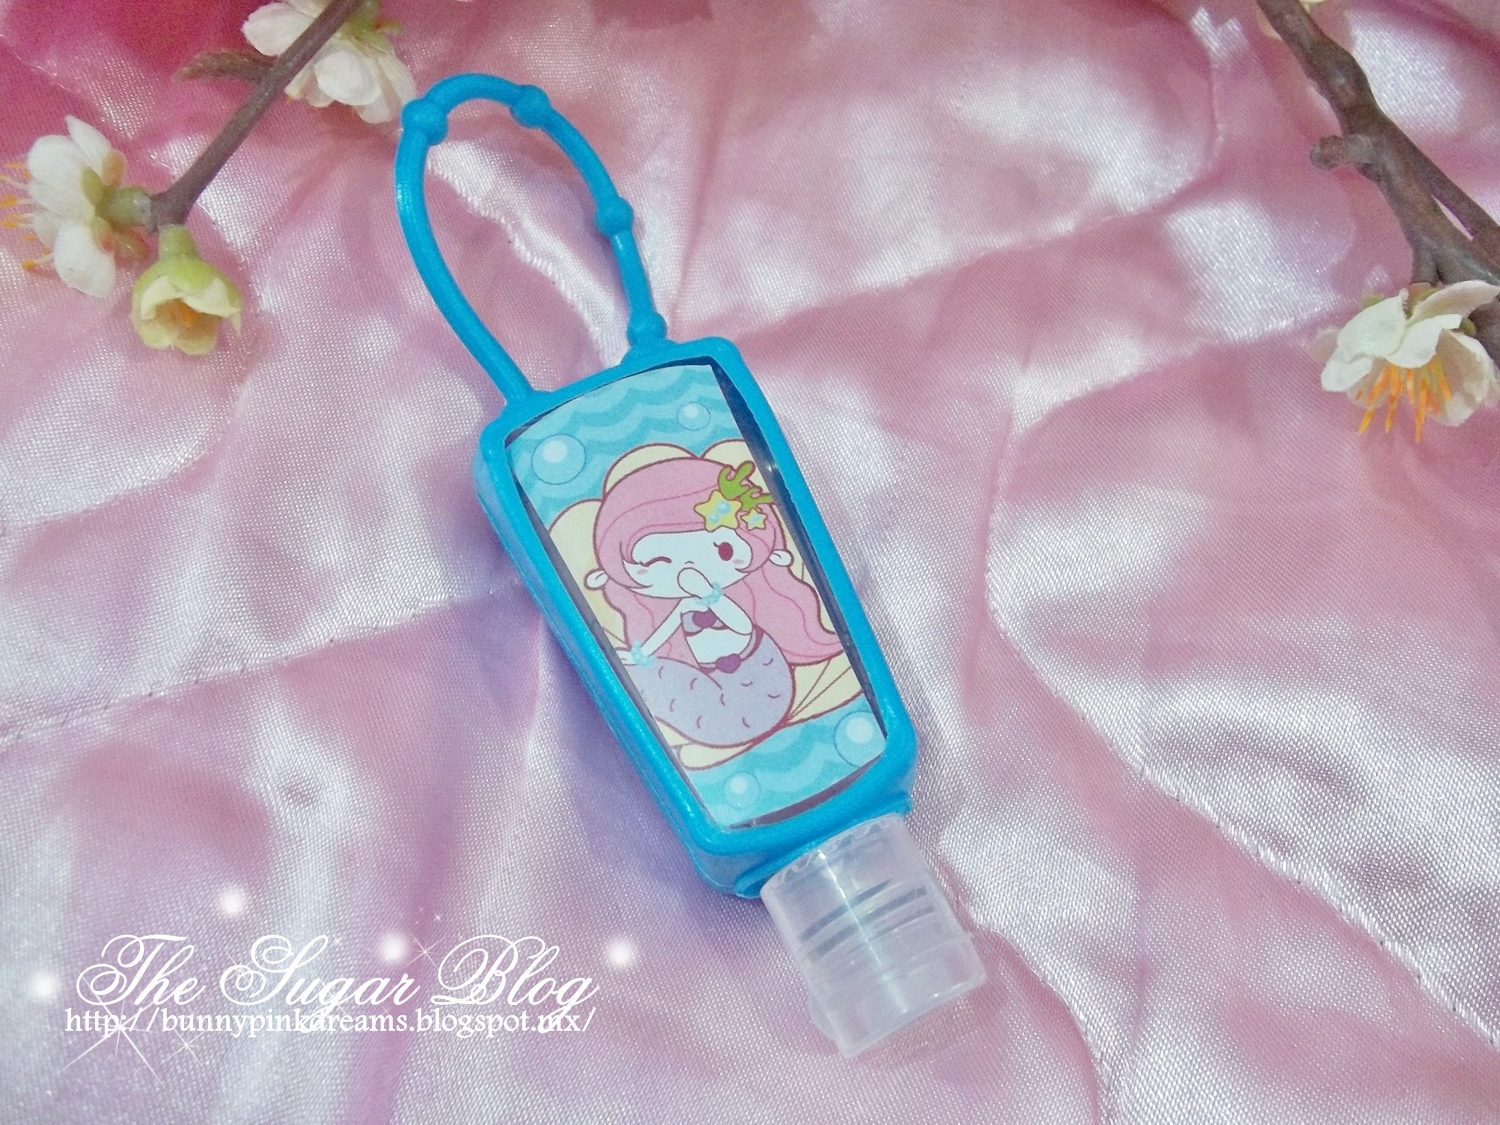 blog tnsnews aroma mermaid review